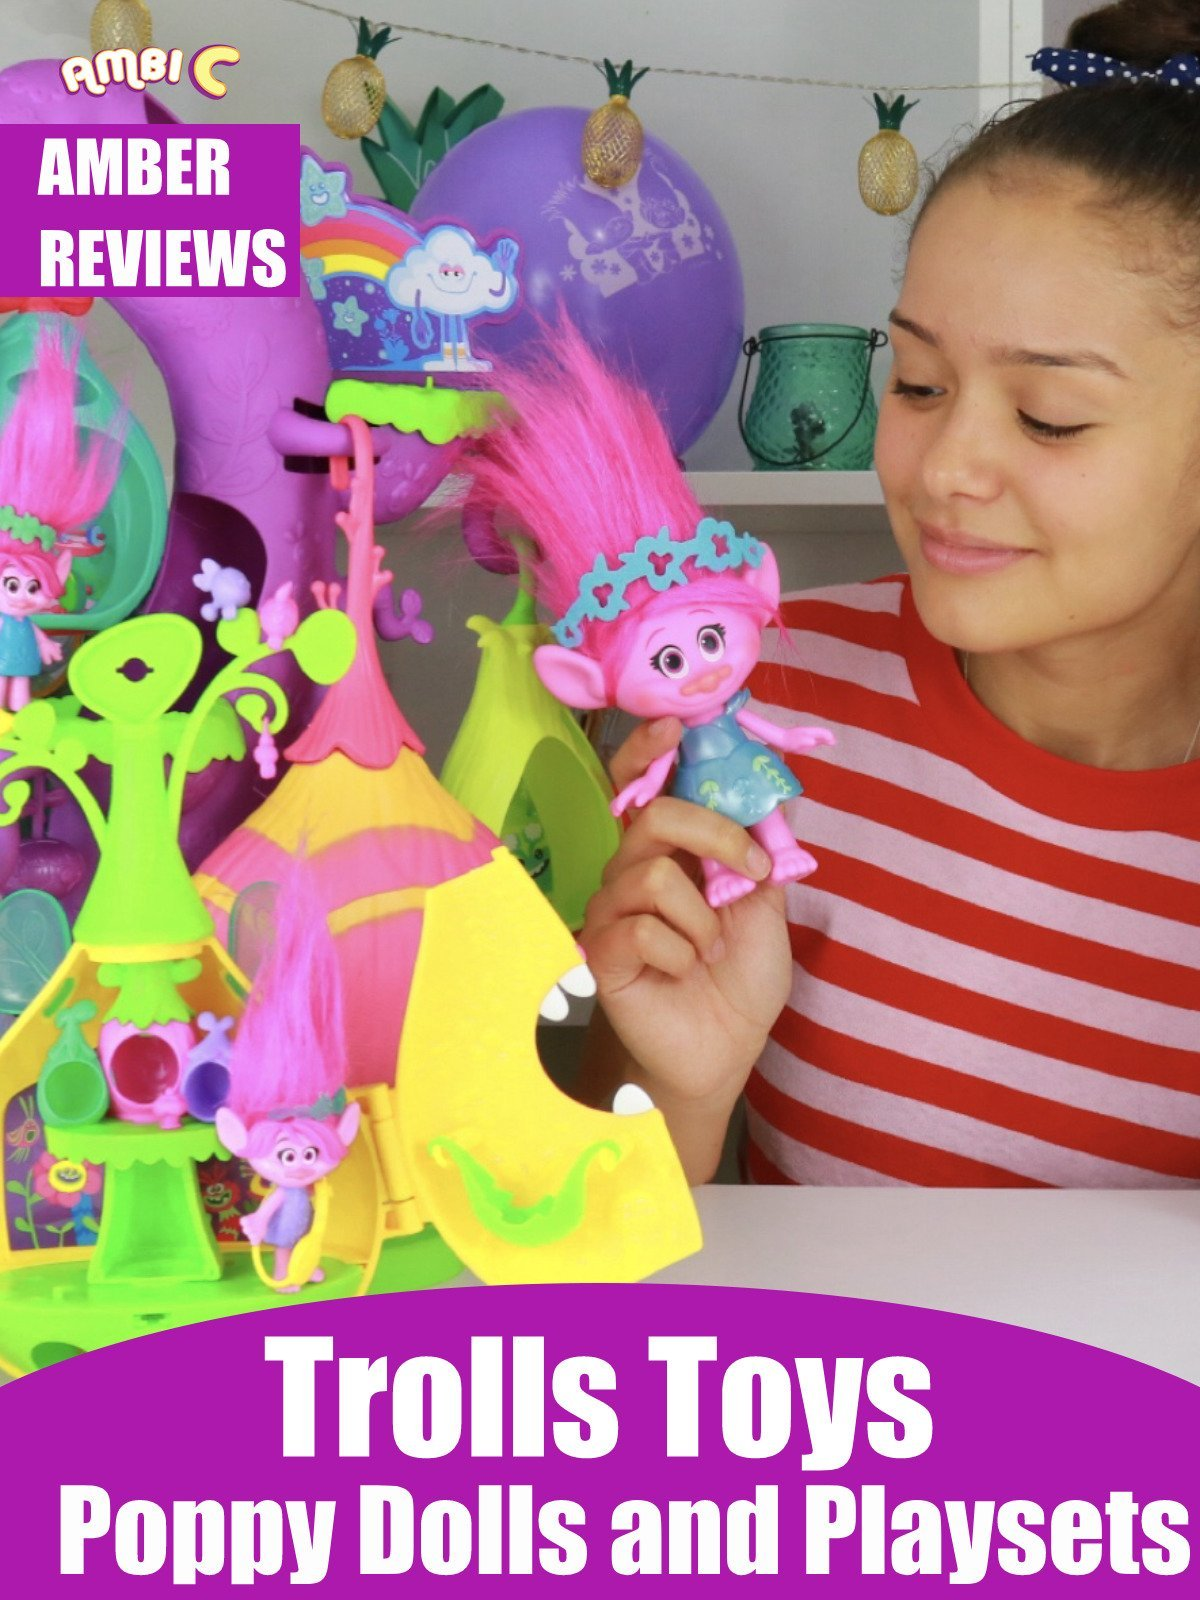 Amber Reviews Trolls Toys Poppy Dolls and Playsets